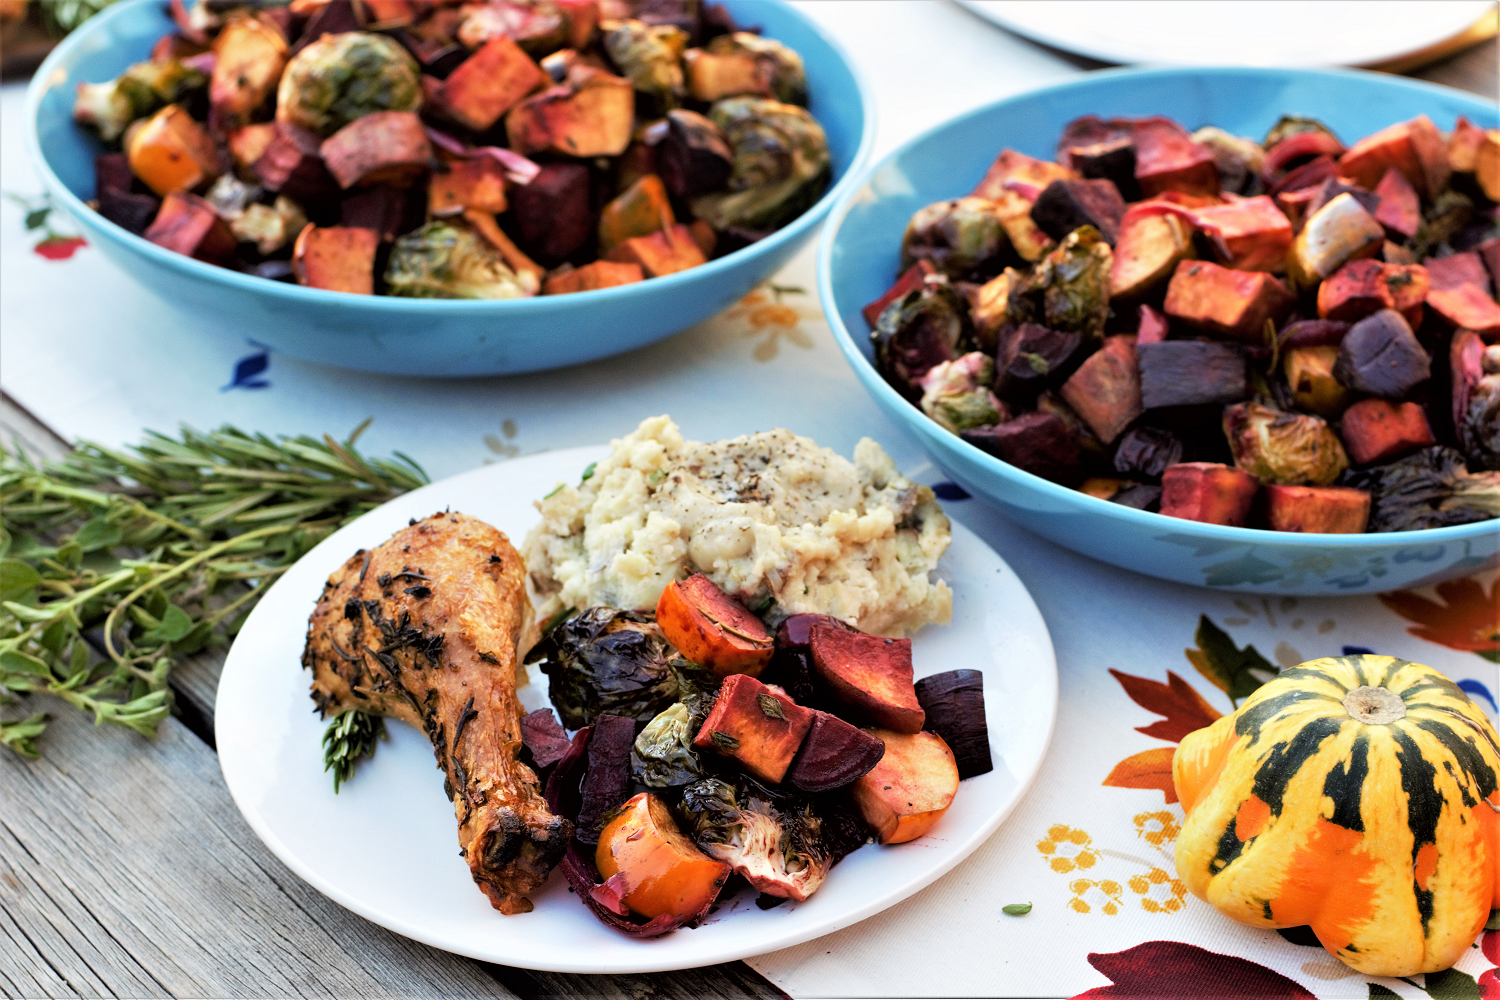 Roasted squash, sweet potatoes, beets, & sprouts coated with sweet-tart glaze will brighten up your holiday table with a rainbow of jewel tones!